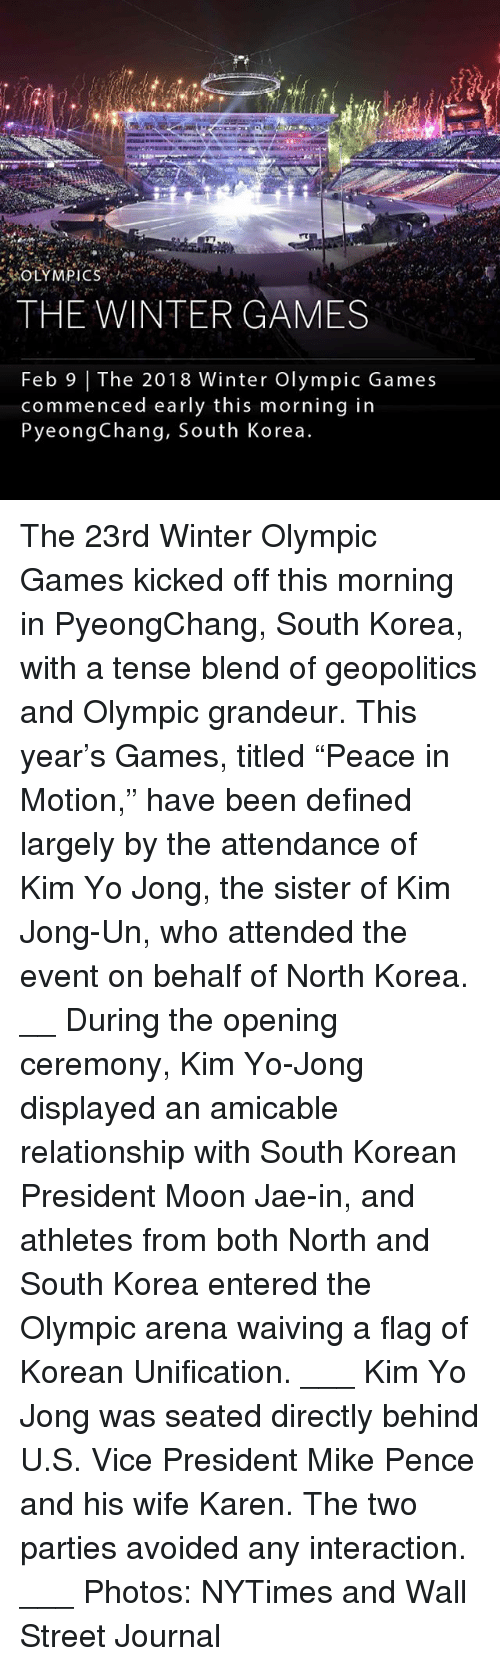 """Kim Jong-Un, Memes, and North Korea: THE WINTERGAMES  Feb 9   The 2018 Winter Olympic Games  commenced early this morning in  PyeongChang, South Korea The 23rd Winter Olympic Games kicked off this morning in PyeongChang, South Korea, with a tense blend of geopolitics and Olympic grandeur. This year's Games, titled """"Peace in Motion,"""" have been defined largely by the attendance of Kim Yo Jong, the sister of Kim Jong-Un, who attended the event on behalf of North Korea. __ During the opening ceremony, Kim Yo-Jong displayed an amicable relationship with South Korean President Moon Jae-in, and athletes from both North and South Korea entered the Olympic arena waiving a flag of Korean Unification. ___ Kim Yo Jong was seated directly behind U.S. Vice President Mike Pence and his wife Karen. The two parties avoided any interaction. ___ Photos: NYTimes and Wall Street Journal"""